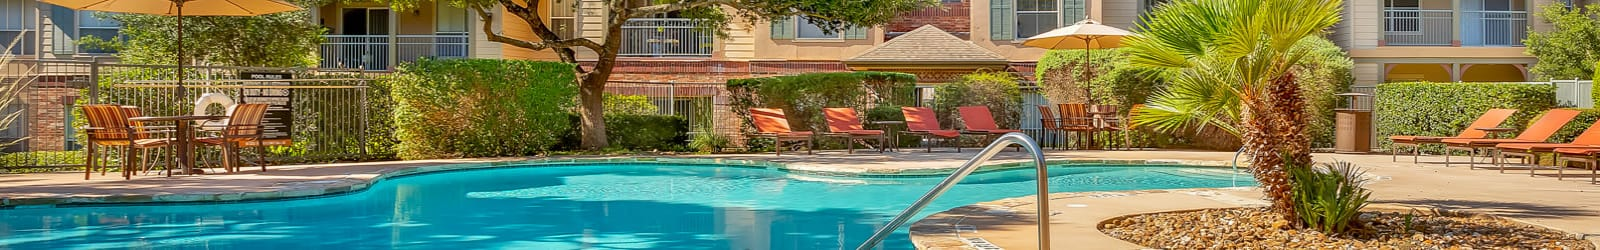 Amenities at The Estates of Northwoods in San Antonio, Texas